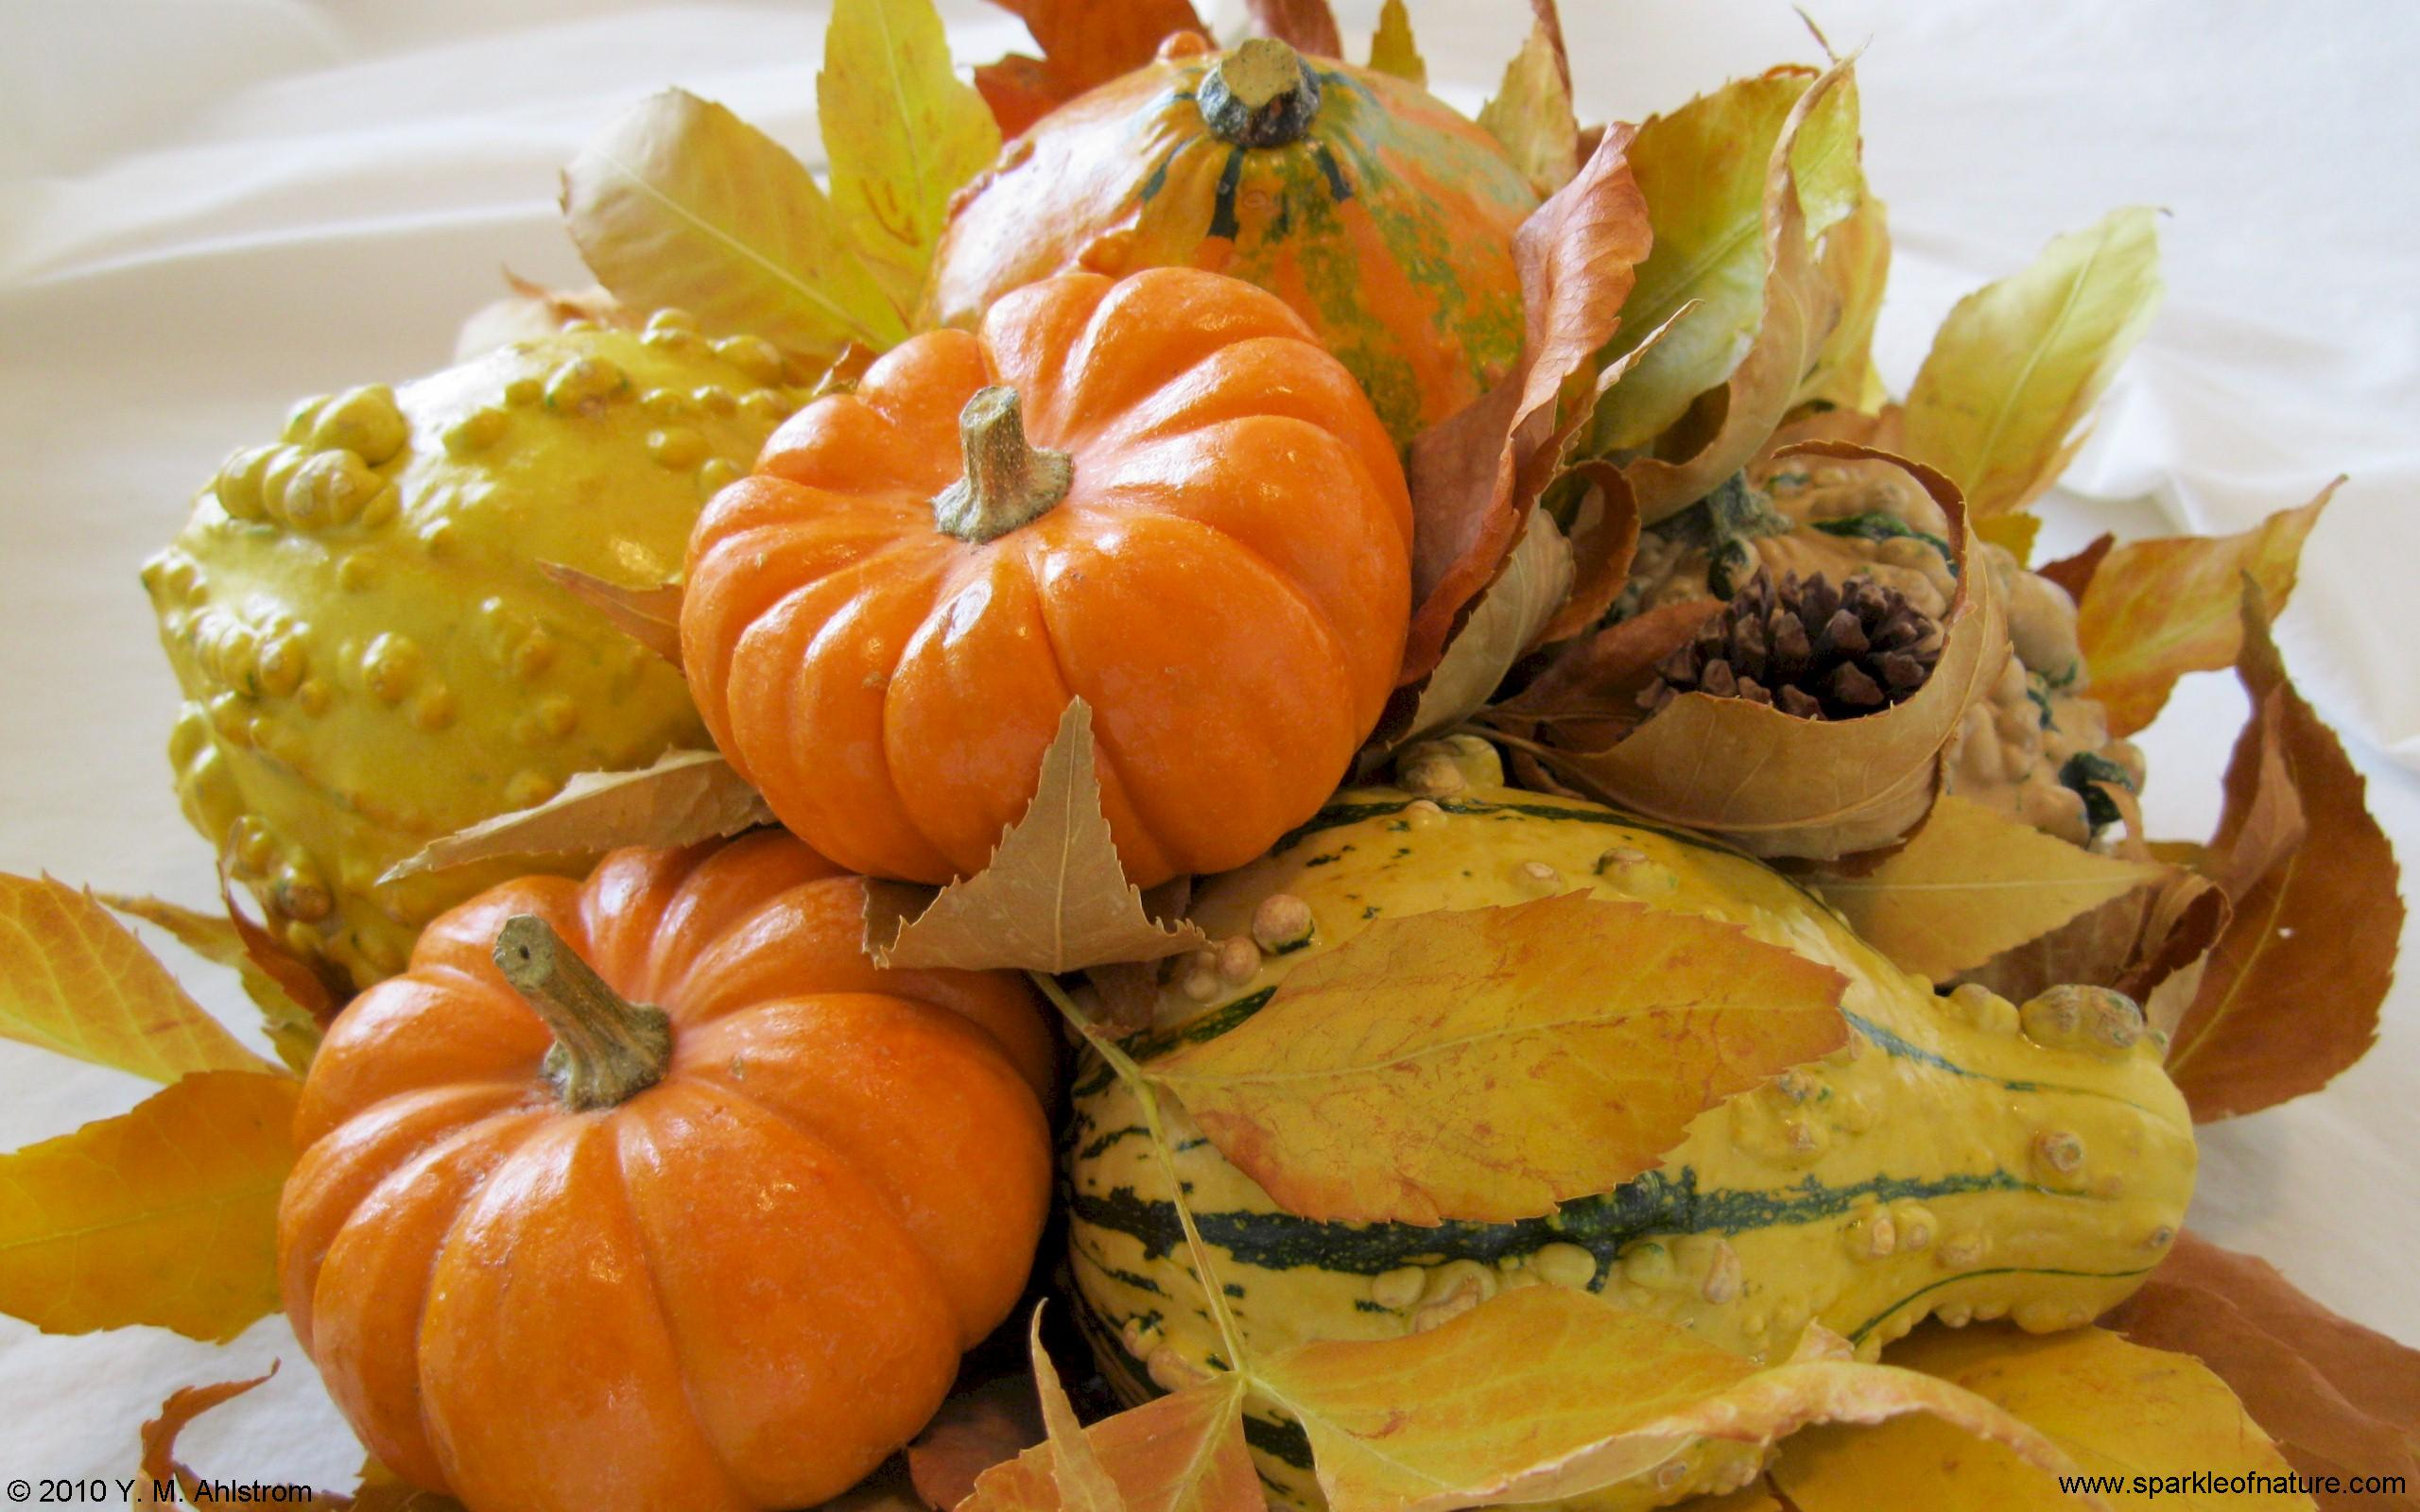 6446 harvest time pumpkins w 2560x1600.jpg (362004 bytes)